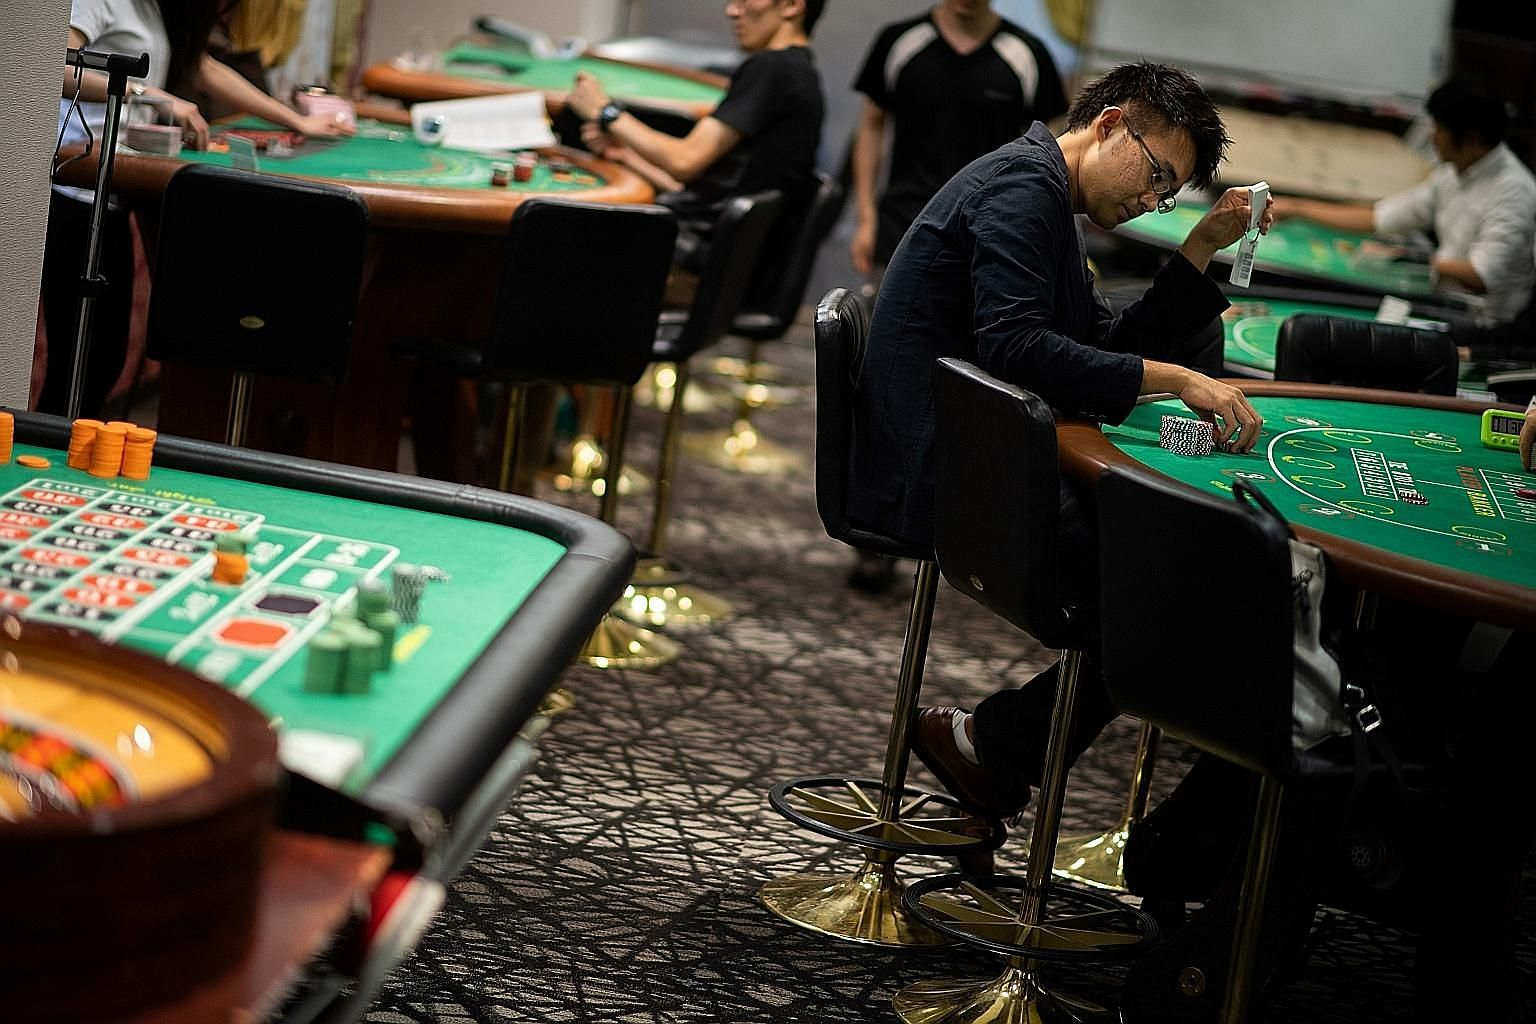 Students at the Japan Casino School in Tokyo in June 2018. There are concerns that casinos will worsen social issues such as problem gambling and fuel the rise of mafia groups. The bribery scandal has exposed underlying vested interests that have unn